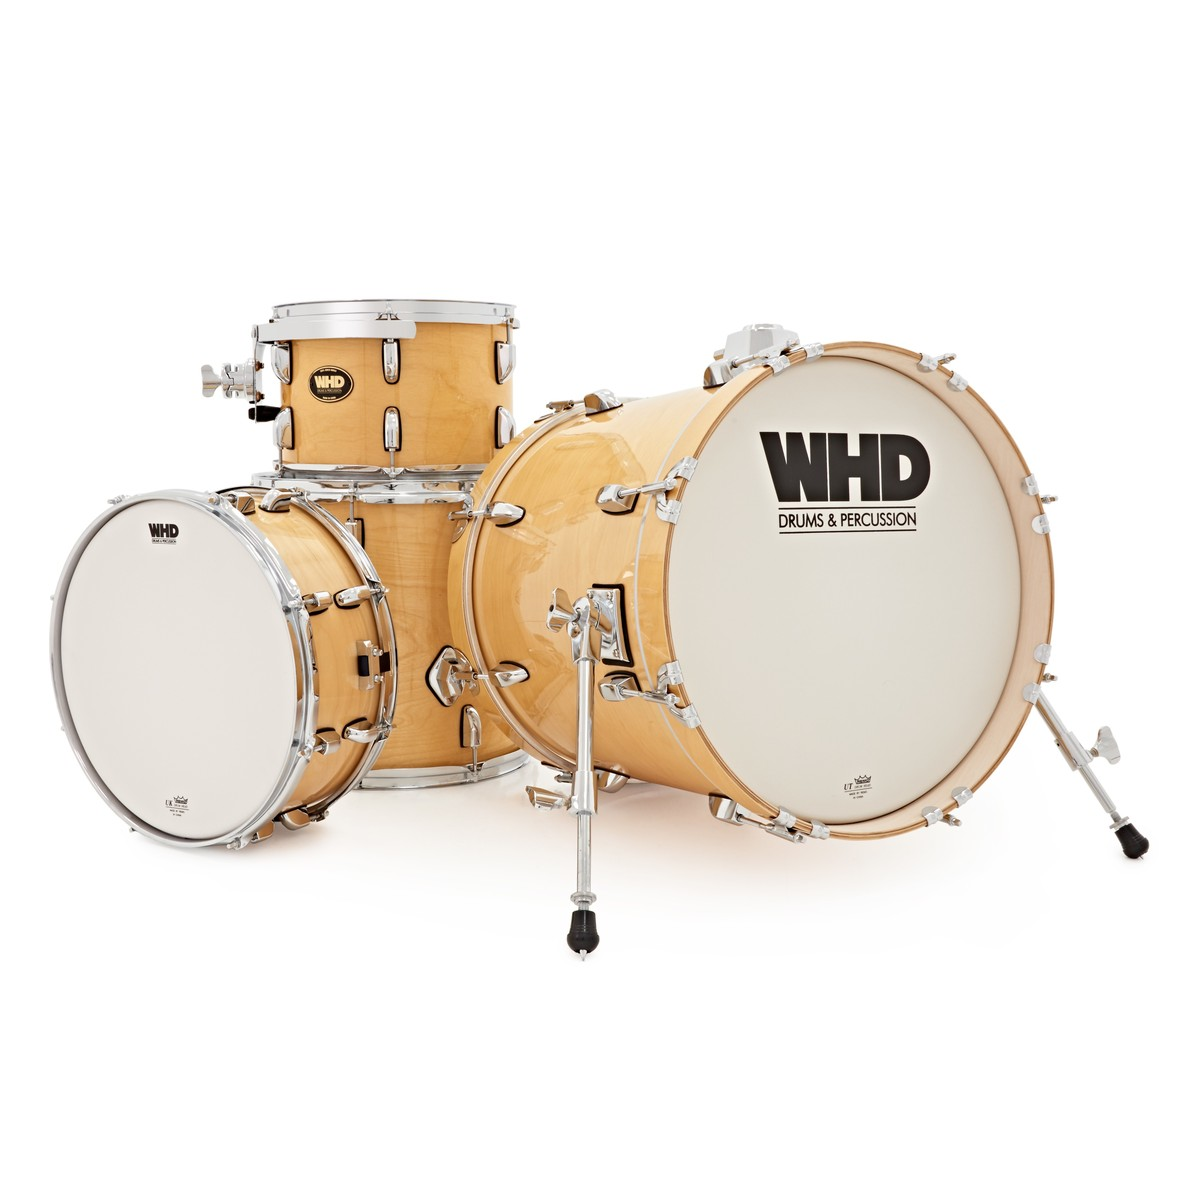 whd birch 4 piece jazz drum kit natural at. Black Bedroom Furniture Sets. Home Design Ideas